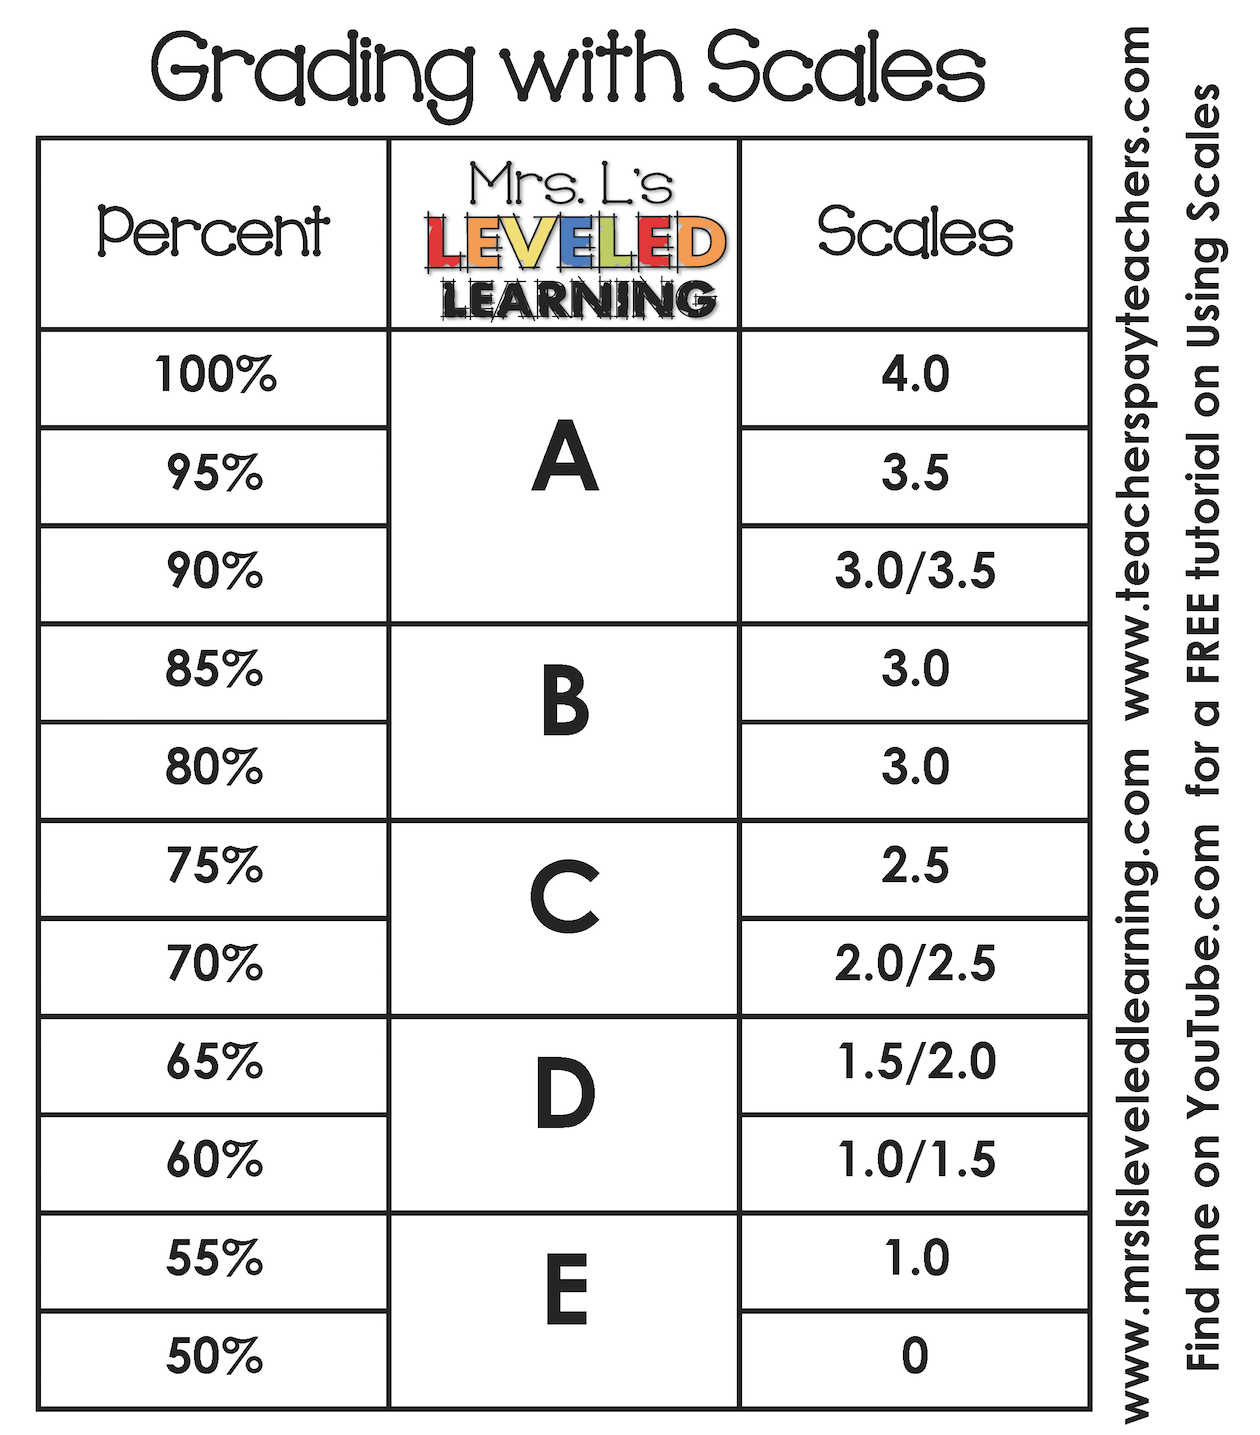 lan based grading system essay Grading system is a set of criteria by which the quality of individual studies could be developed evaluated in terms of both internal validity and external validity information is a usable data being gathered for special purposes.